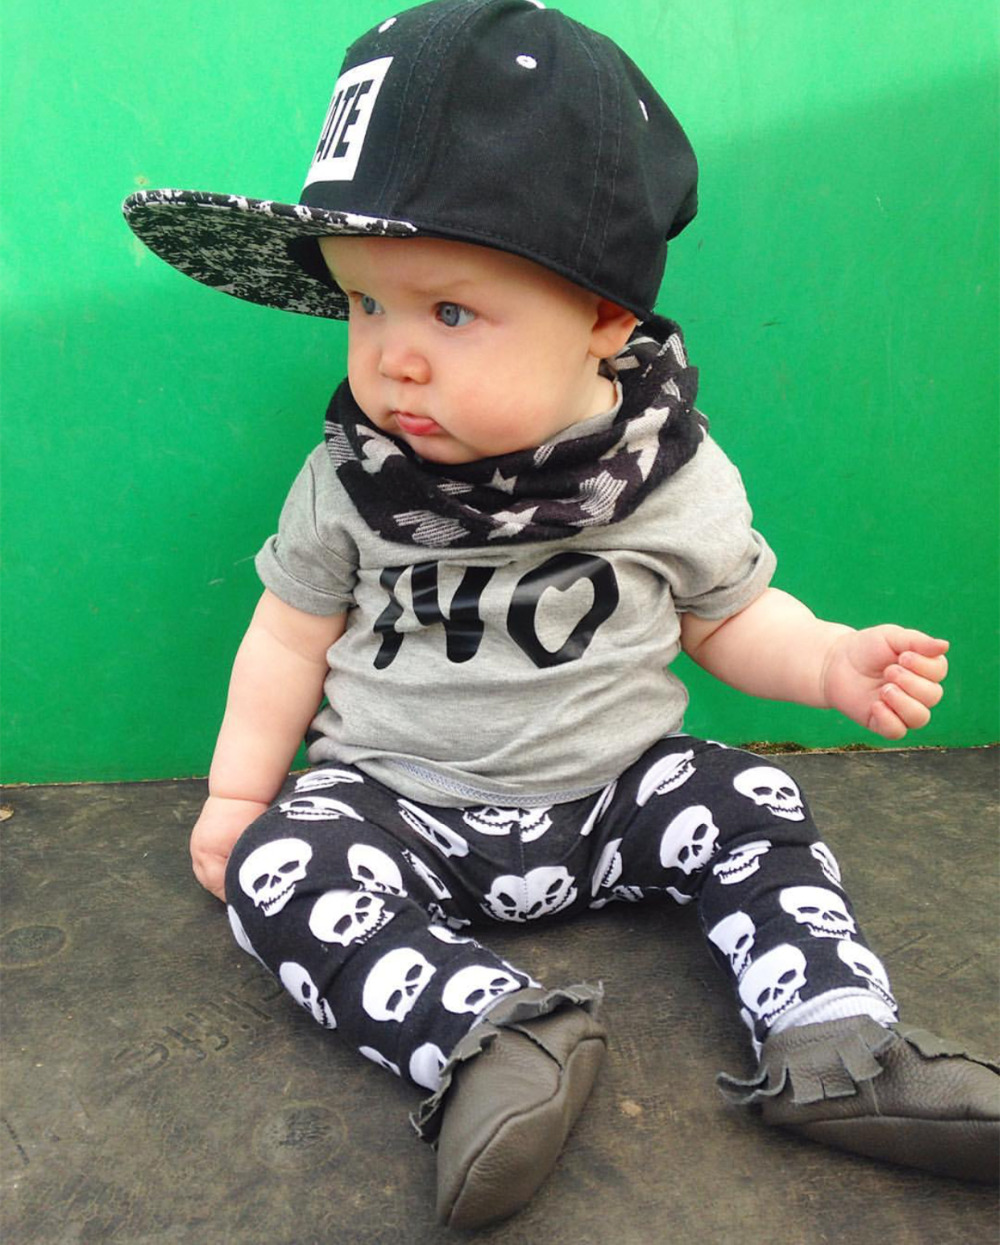 2016 Summer Style Infant Clothes Baby Boy Clothes Cotton Short Sleeve Letter T Shirt+Pants 2 Pcs Baby GIrl Clothing set(China (Mainland))